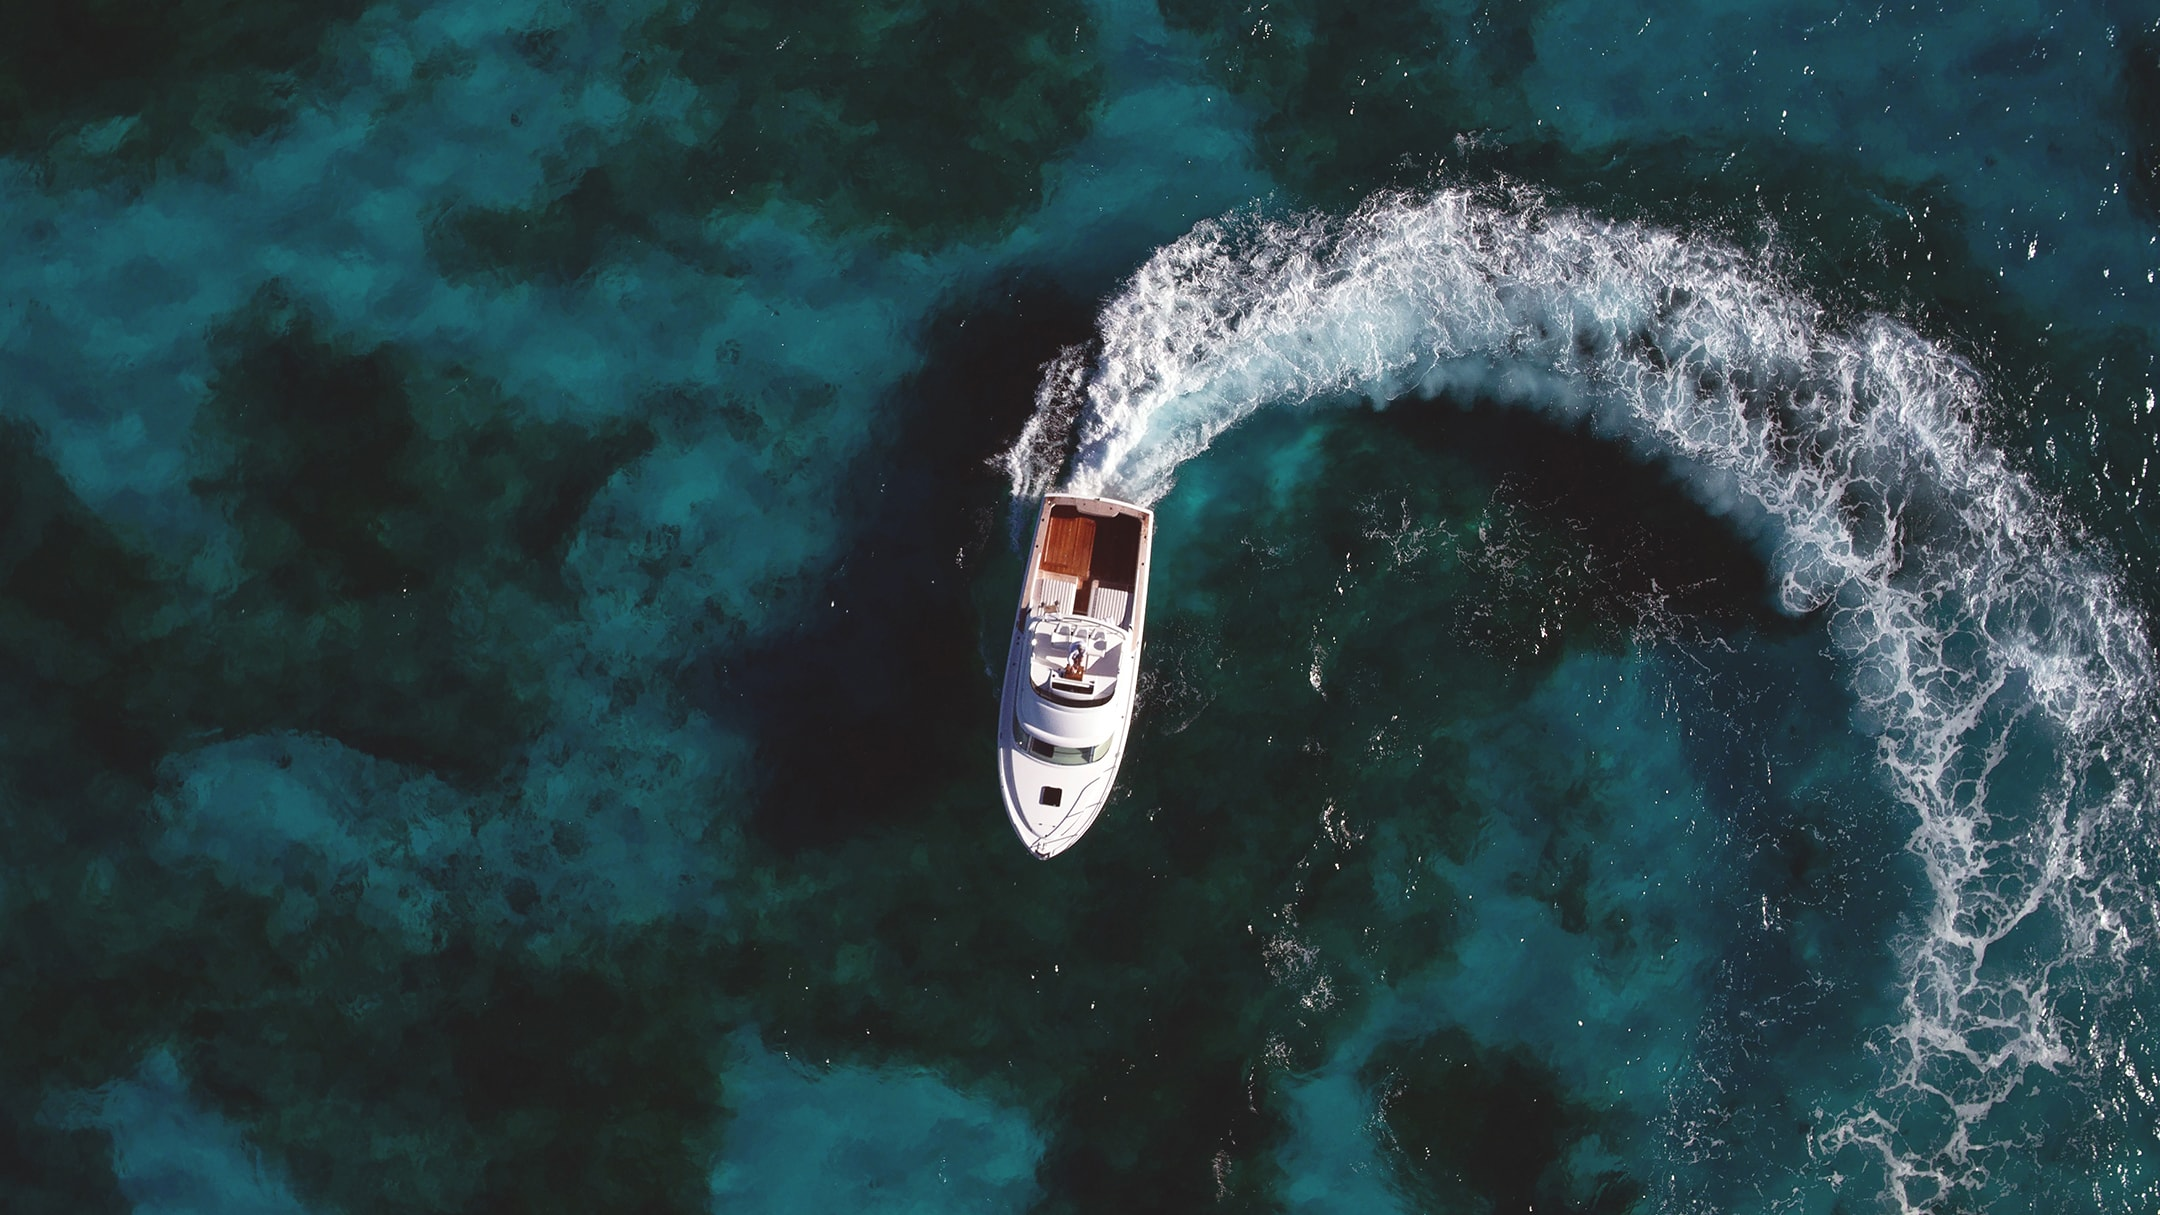 An overhead shot of a Bertram Yacht circling in water used for their brand refresh.